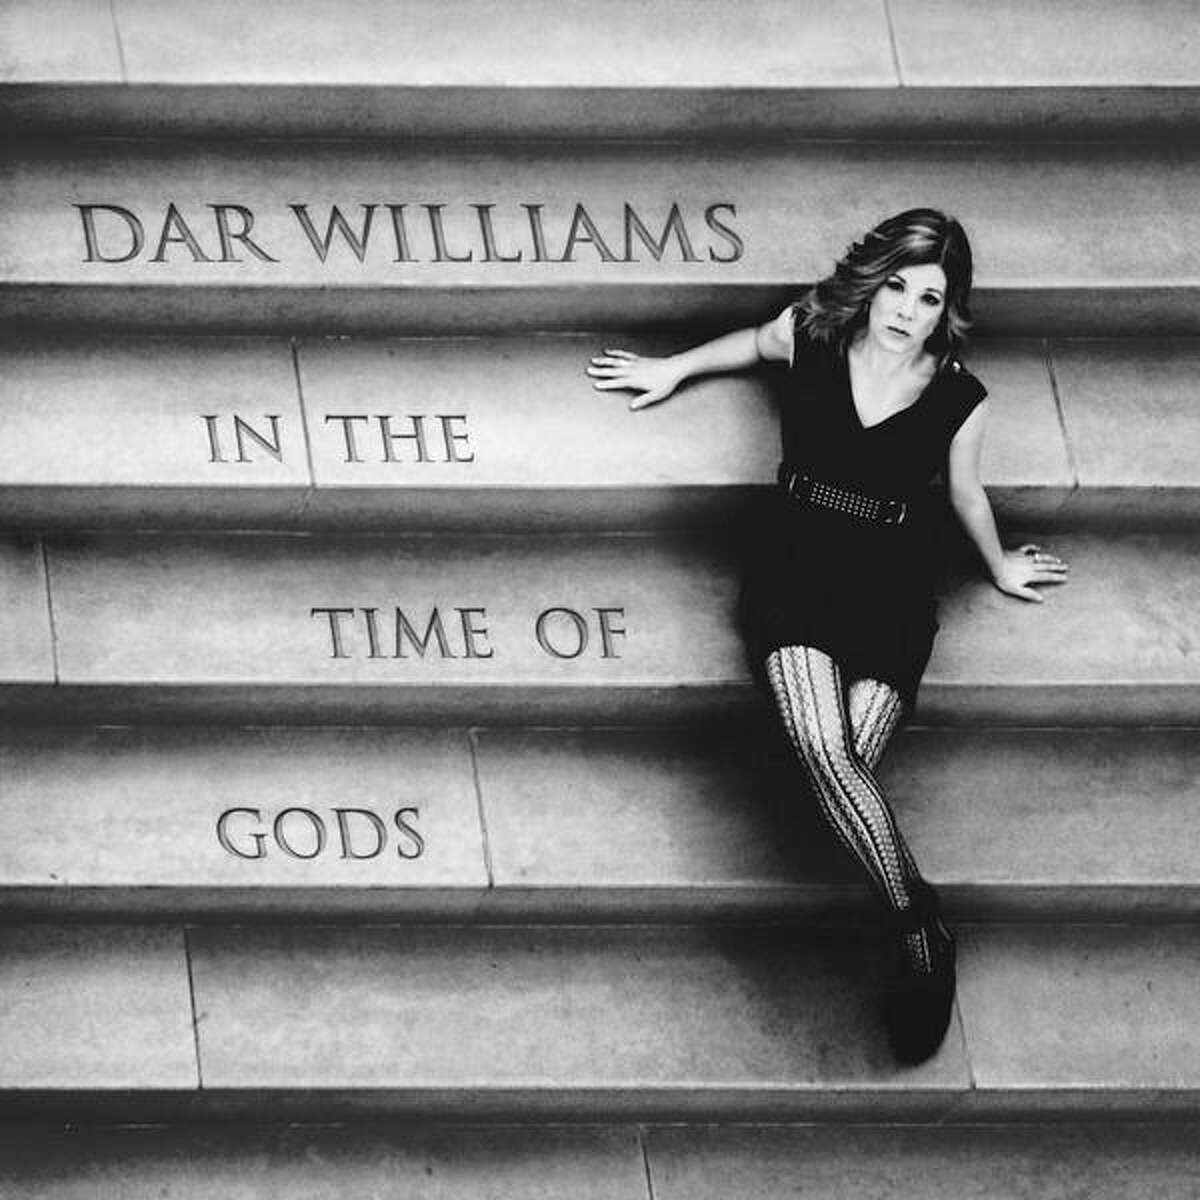 """Dar Williams """"In the Time of Gods"""""""